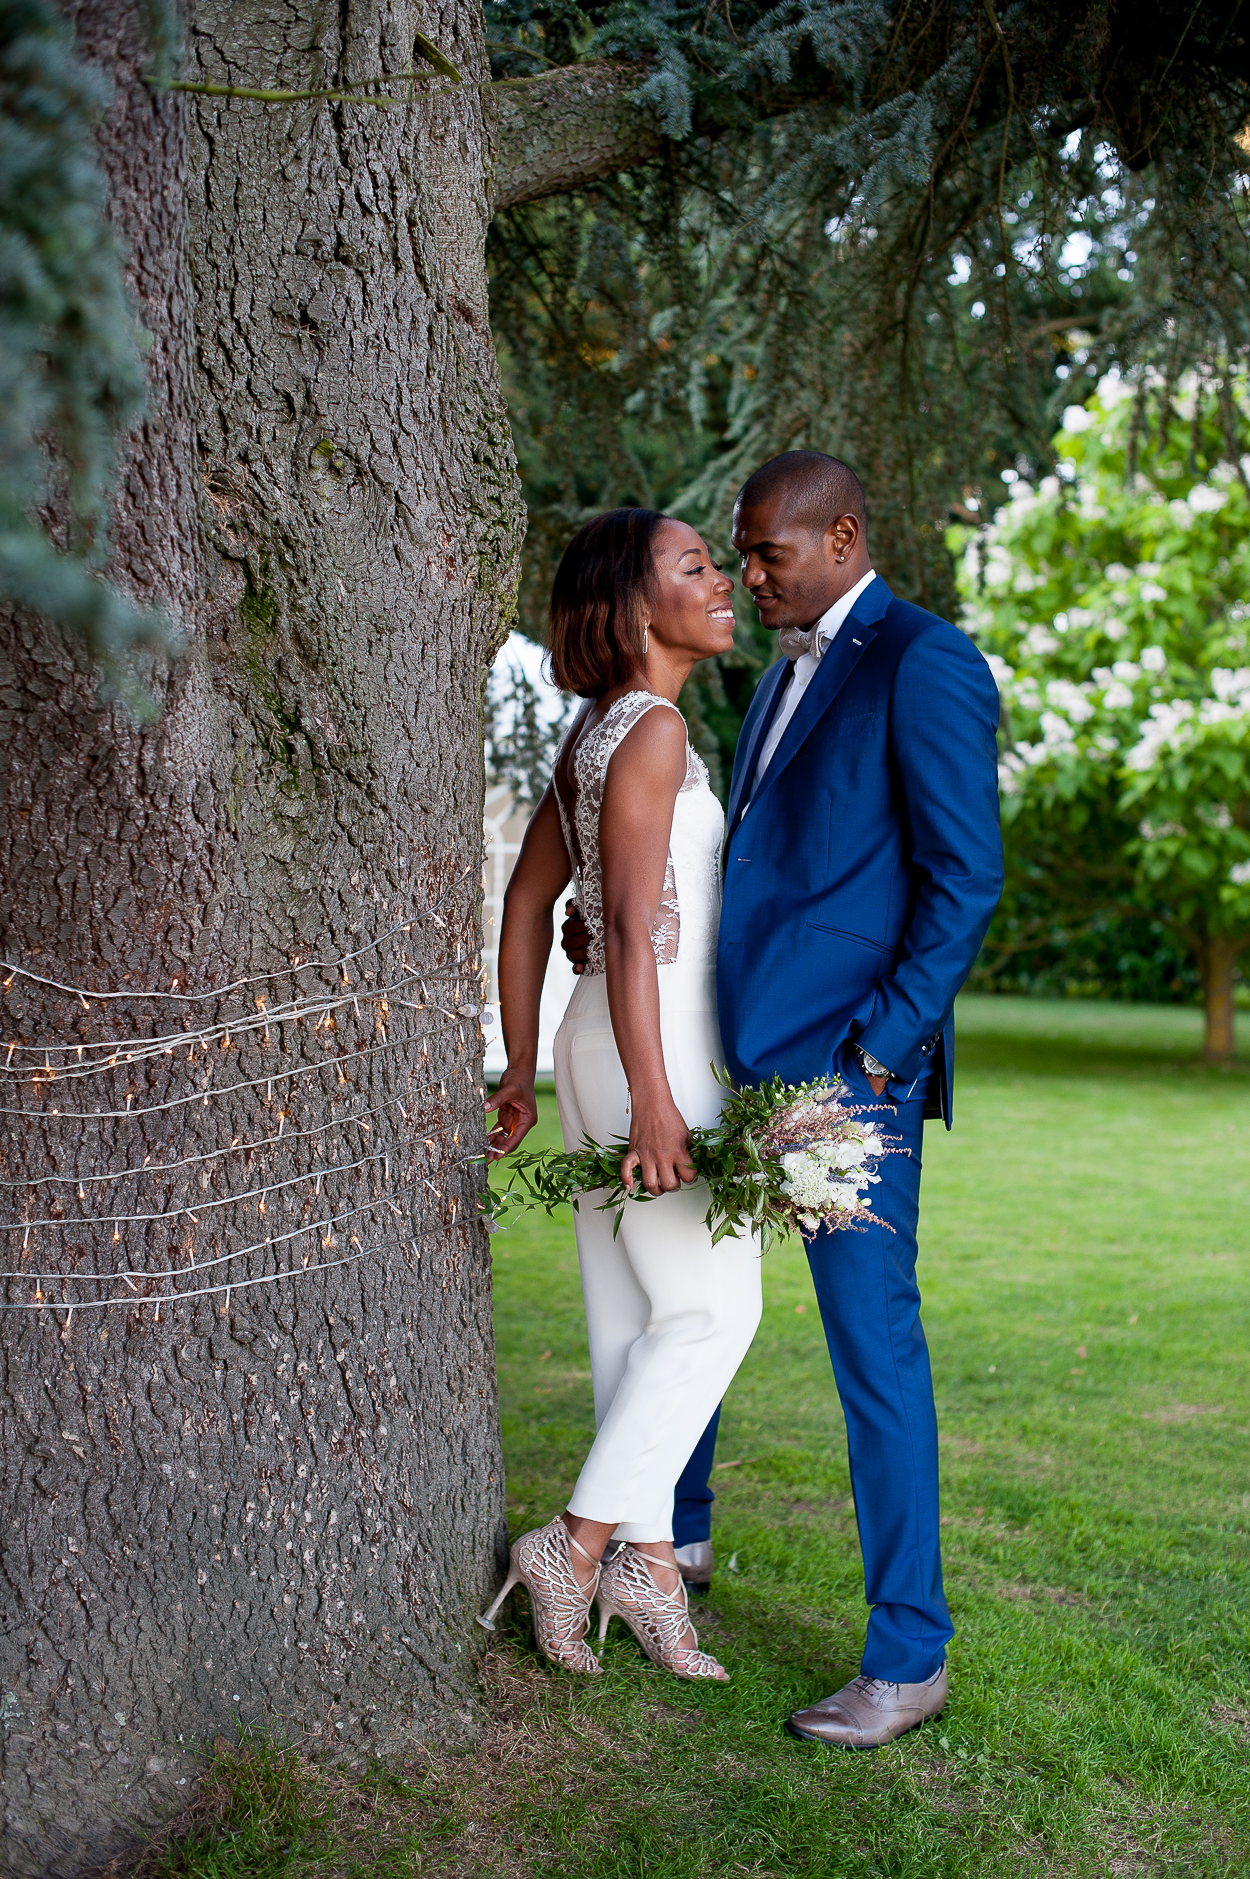 photos de couple mariage lifestyle